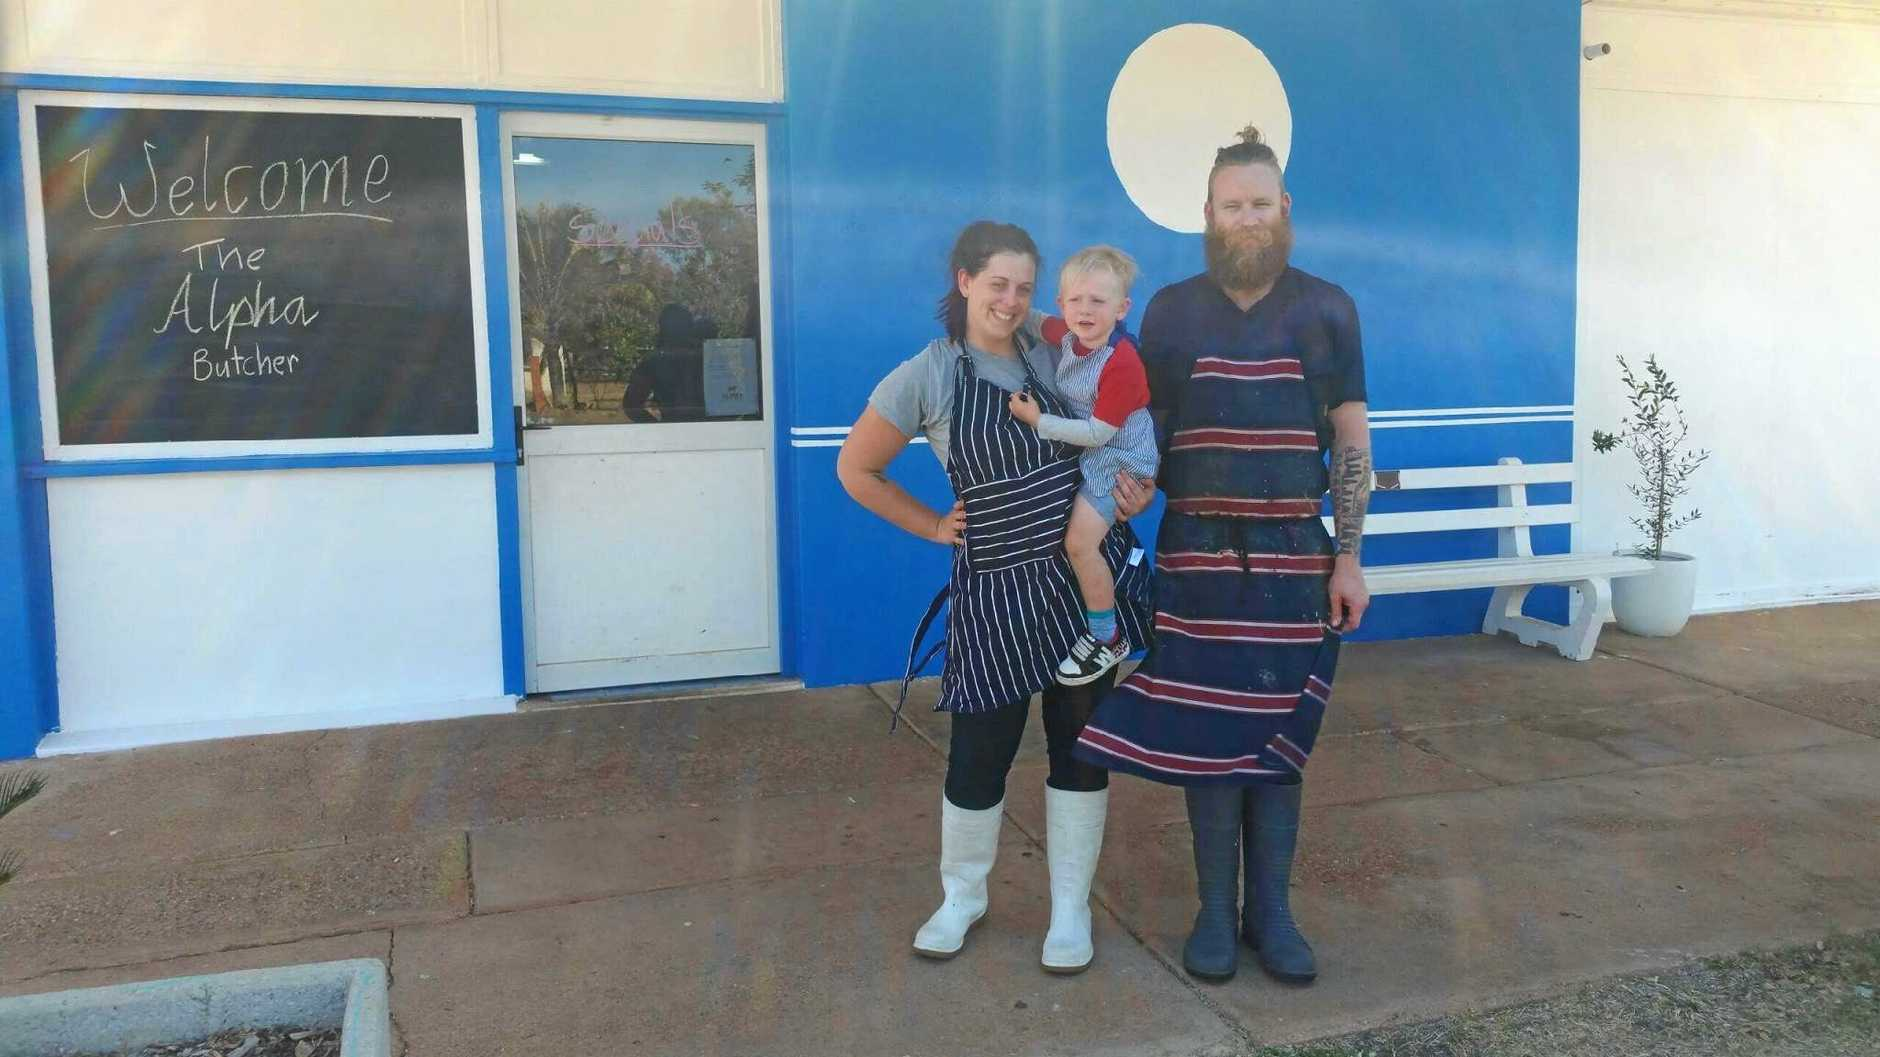 NEW OWNERS: Steve Anderson with partner Kylie Jones and their son, Stockton, 3, are the new owners of the butchers in Alpha. They hope to bring a fresh new face to the town that is amidst a harsh drought covering most of Queensland and New South Wales.